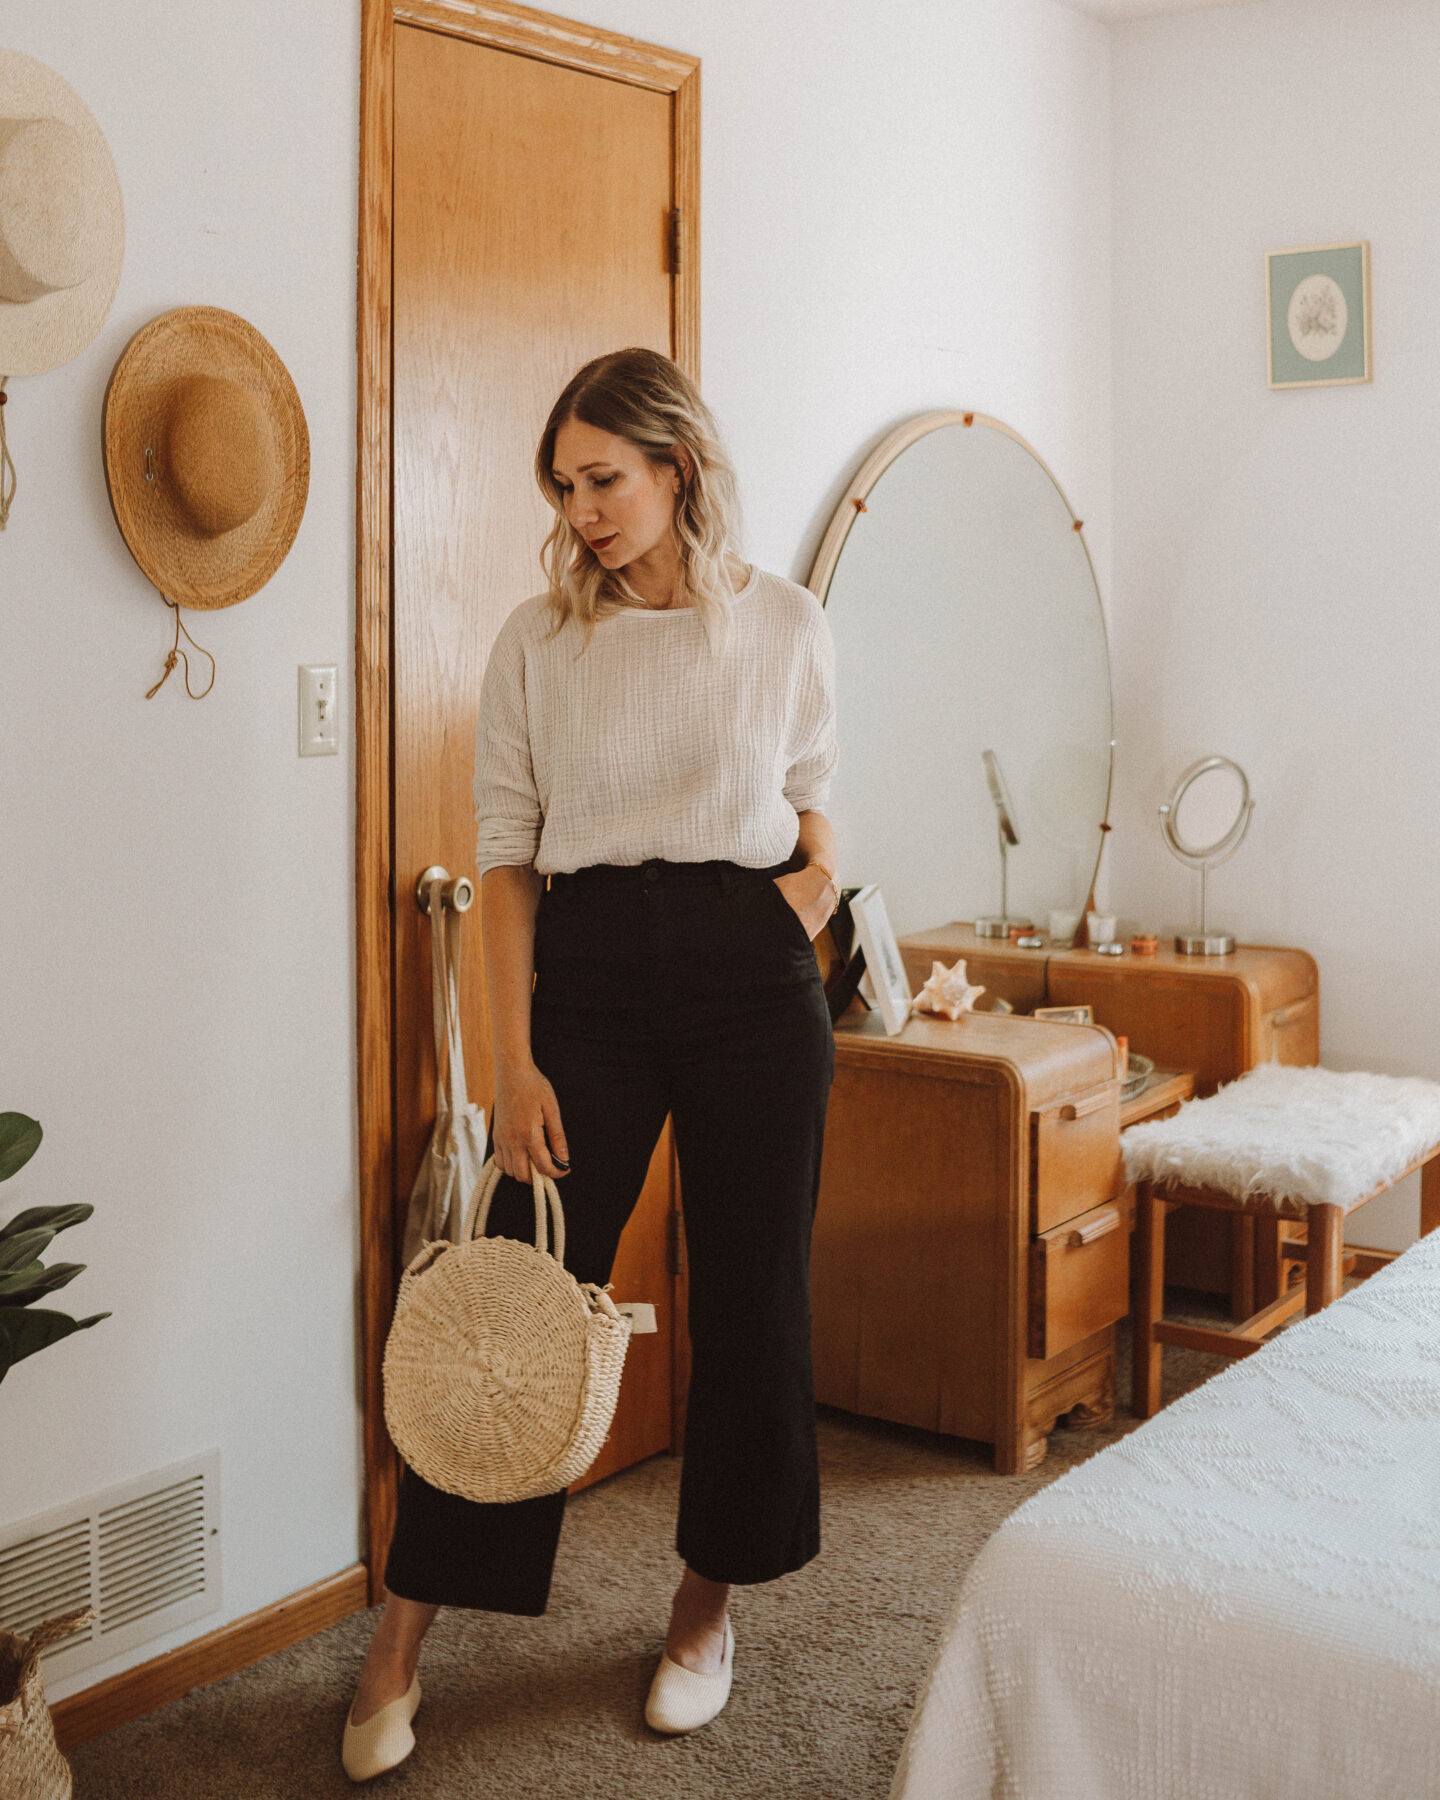 How to Style Wide Leg Pants + 6 Outfit Ideas, it is well la gauze long sleeve top, black kotn cropped culotte pants, everlane reknit day glove shoe, straw circle bag